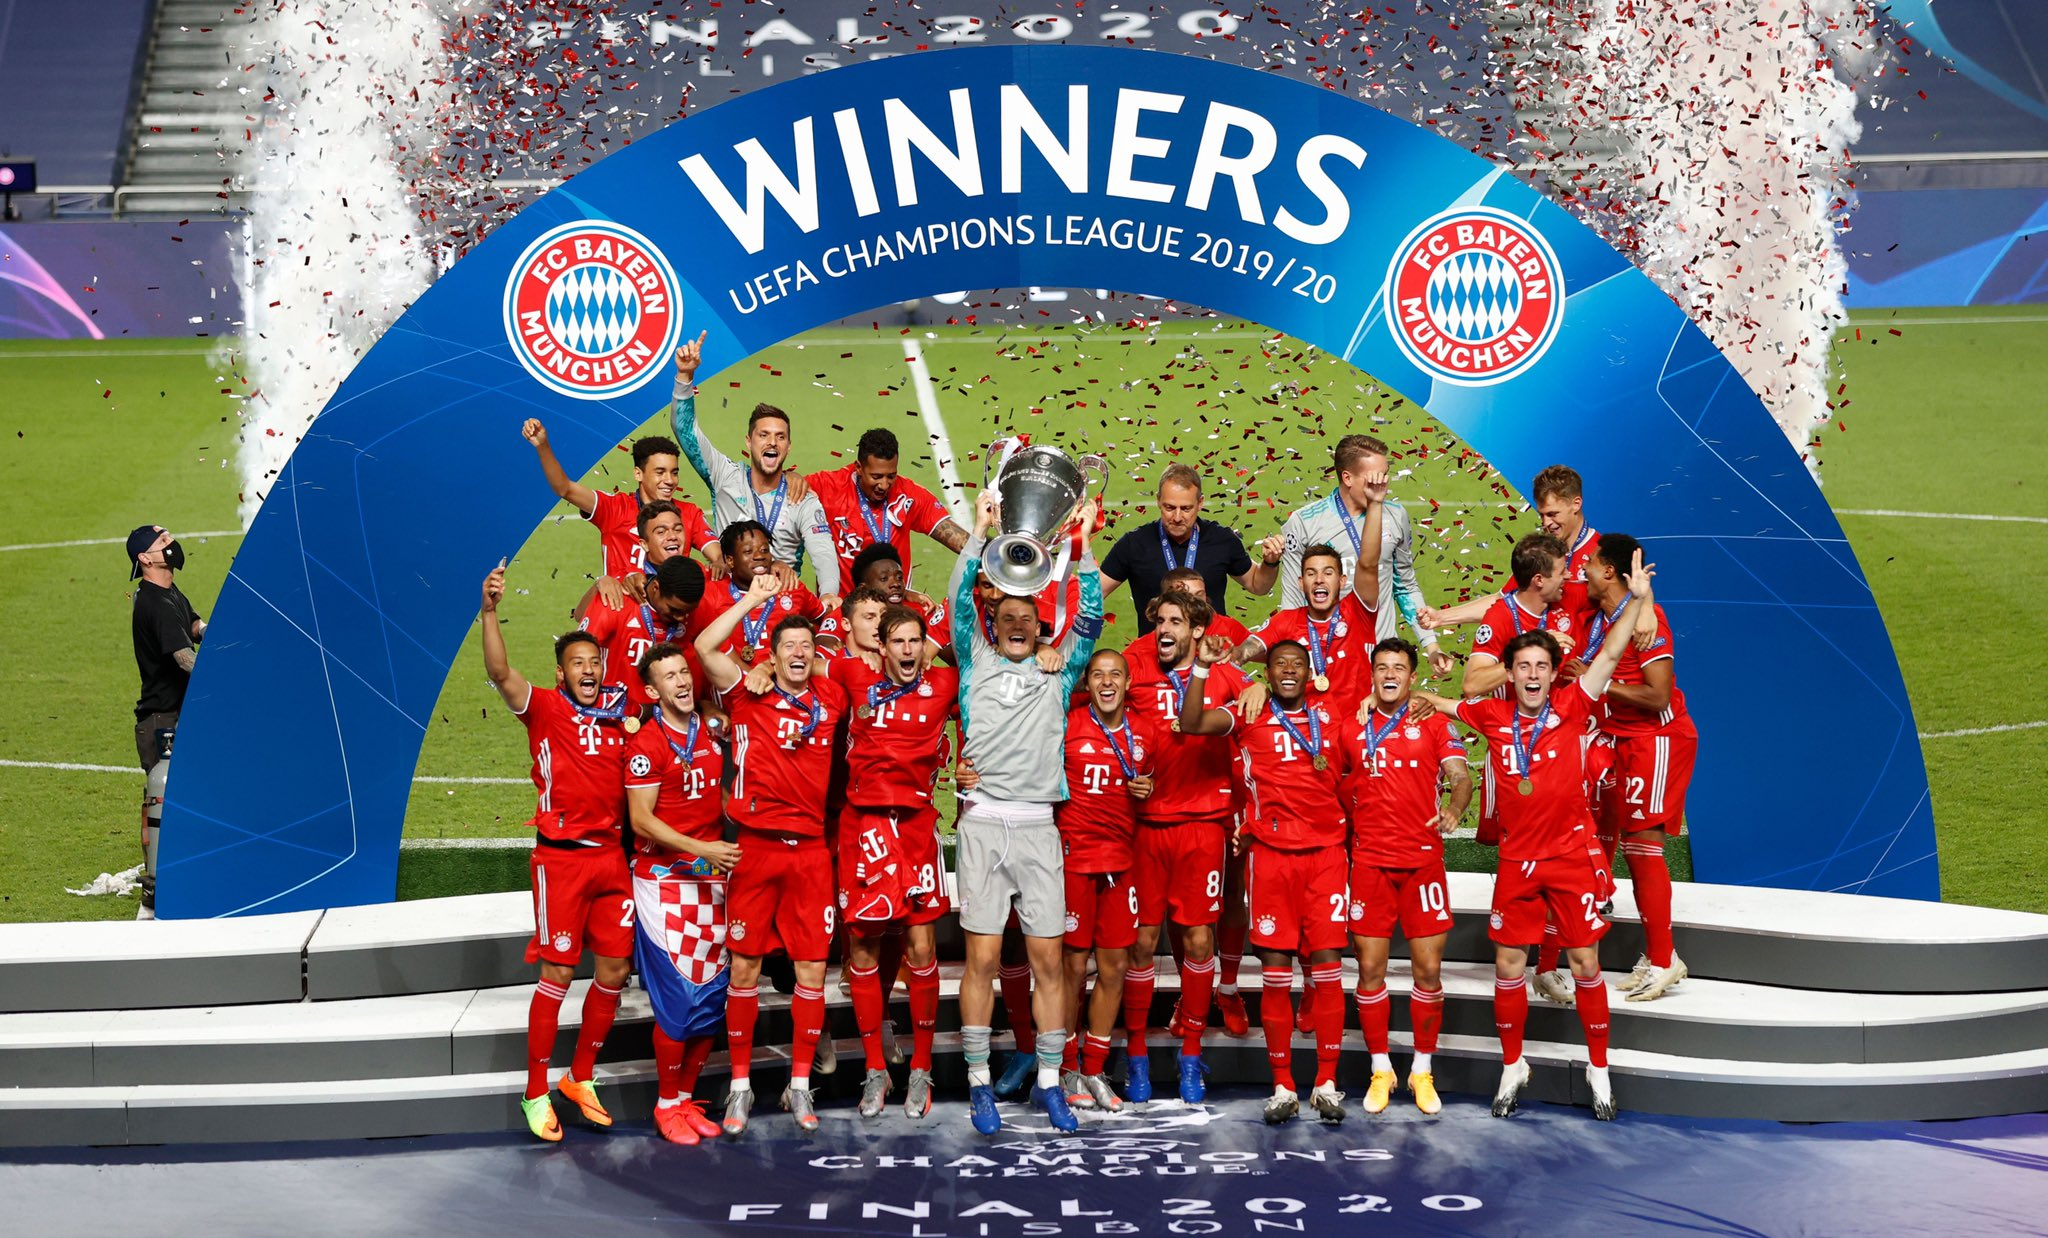 IMG 20200824 055935 0c722190bf66c3c1933ec52dfcd49991 - Bayern Munich defeats PSG, winning sixth European Title